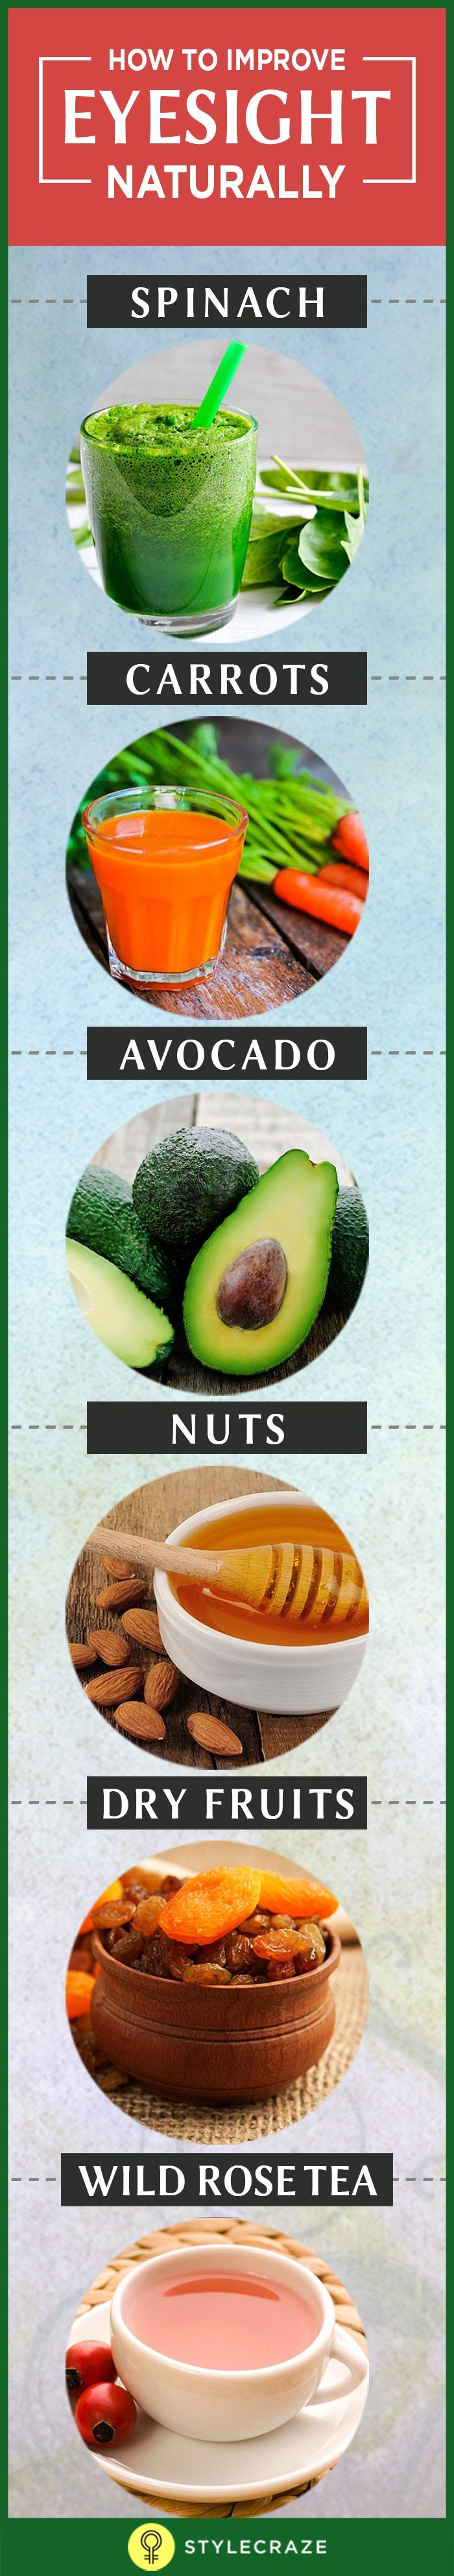 15 Foods To Maintain And Protect Your Eyesight Naturally | Healthy eyes,  Health remedies, Eye sight improvement